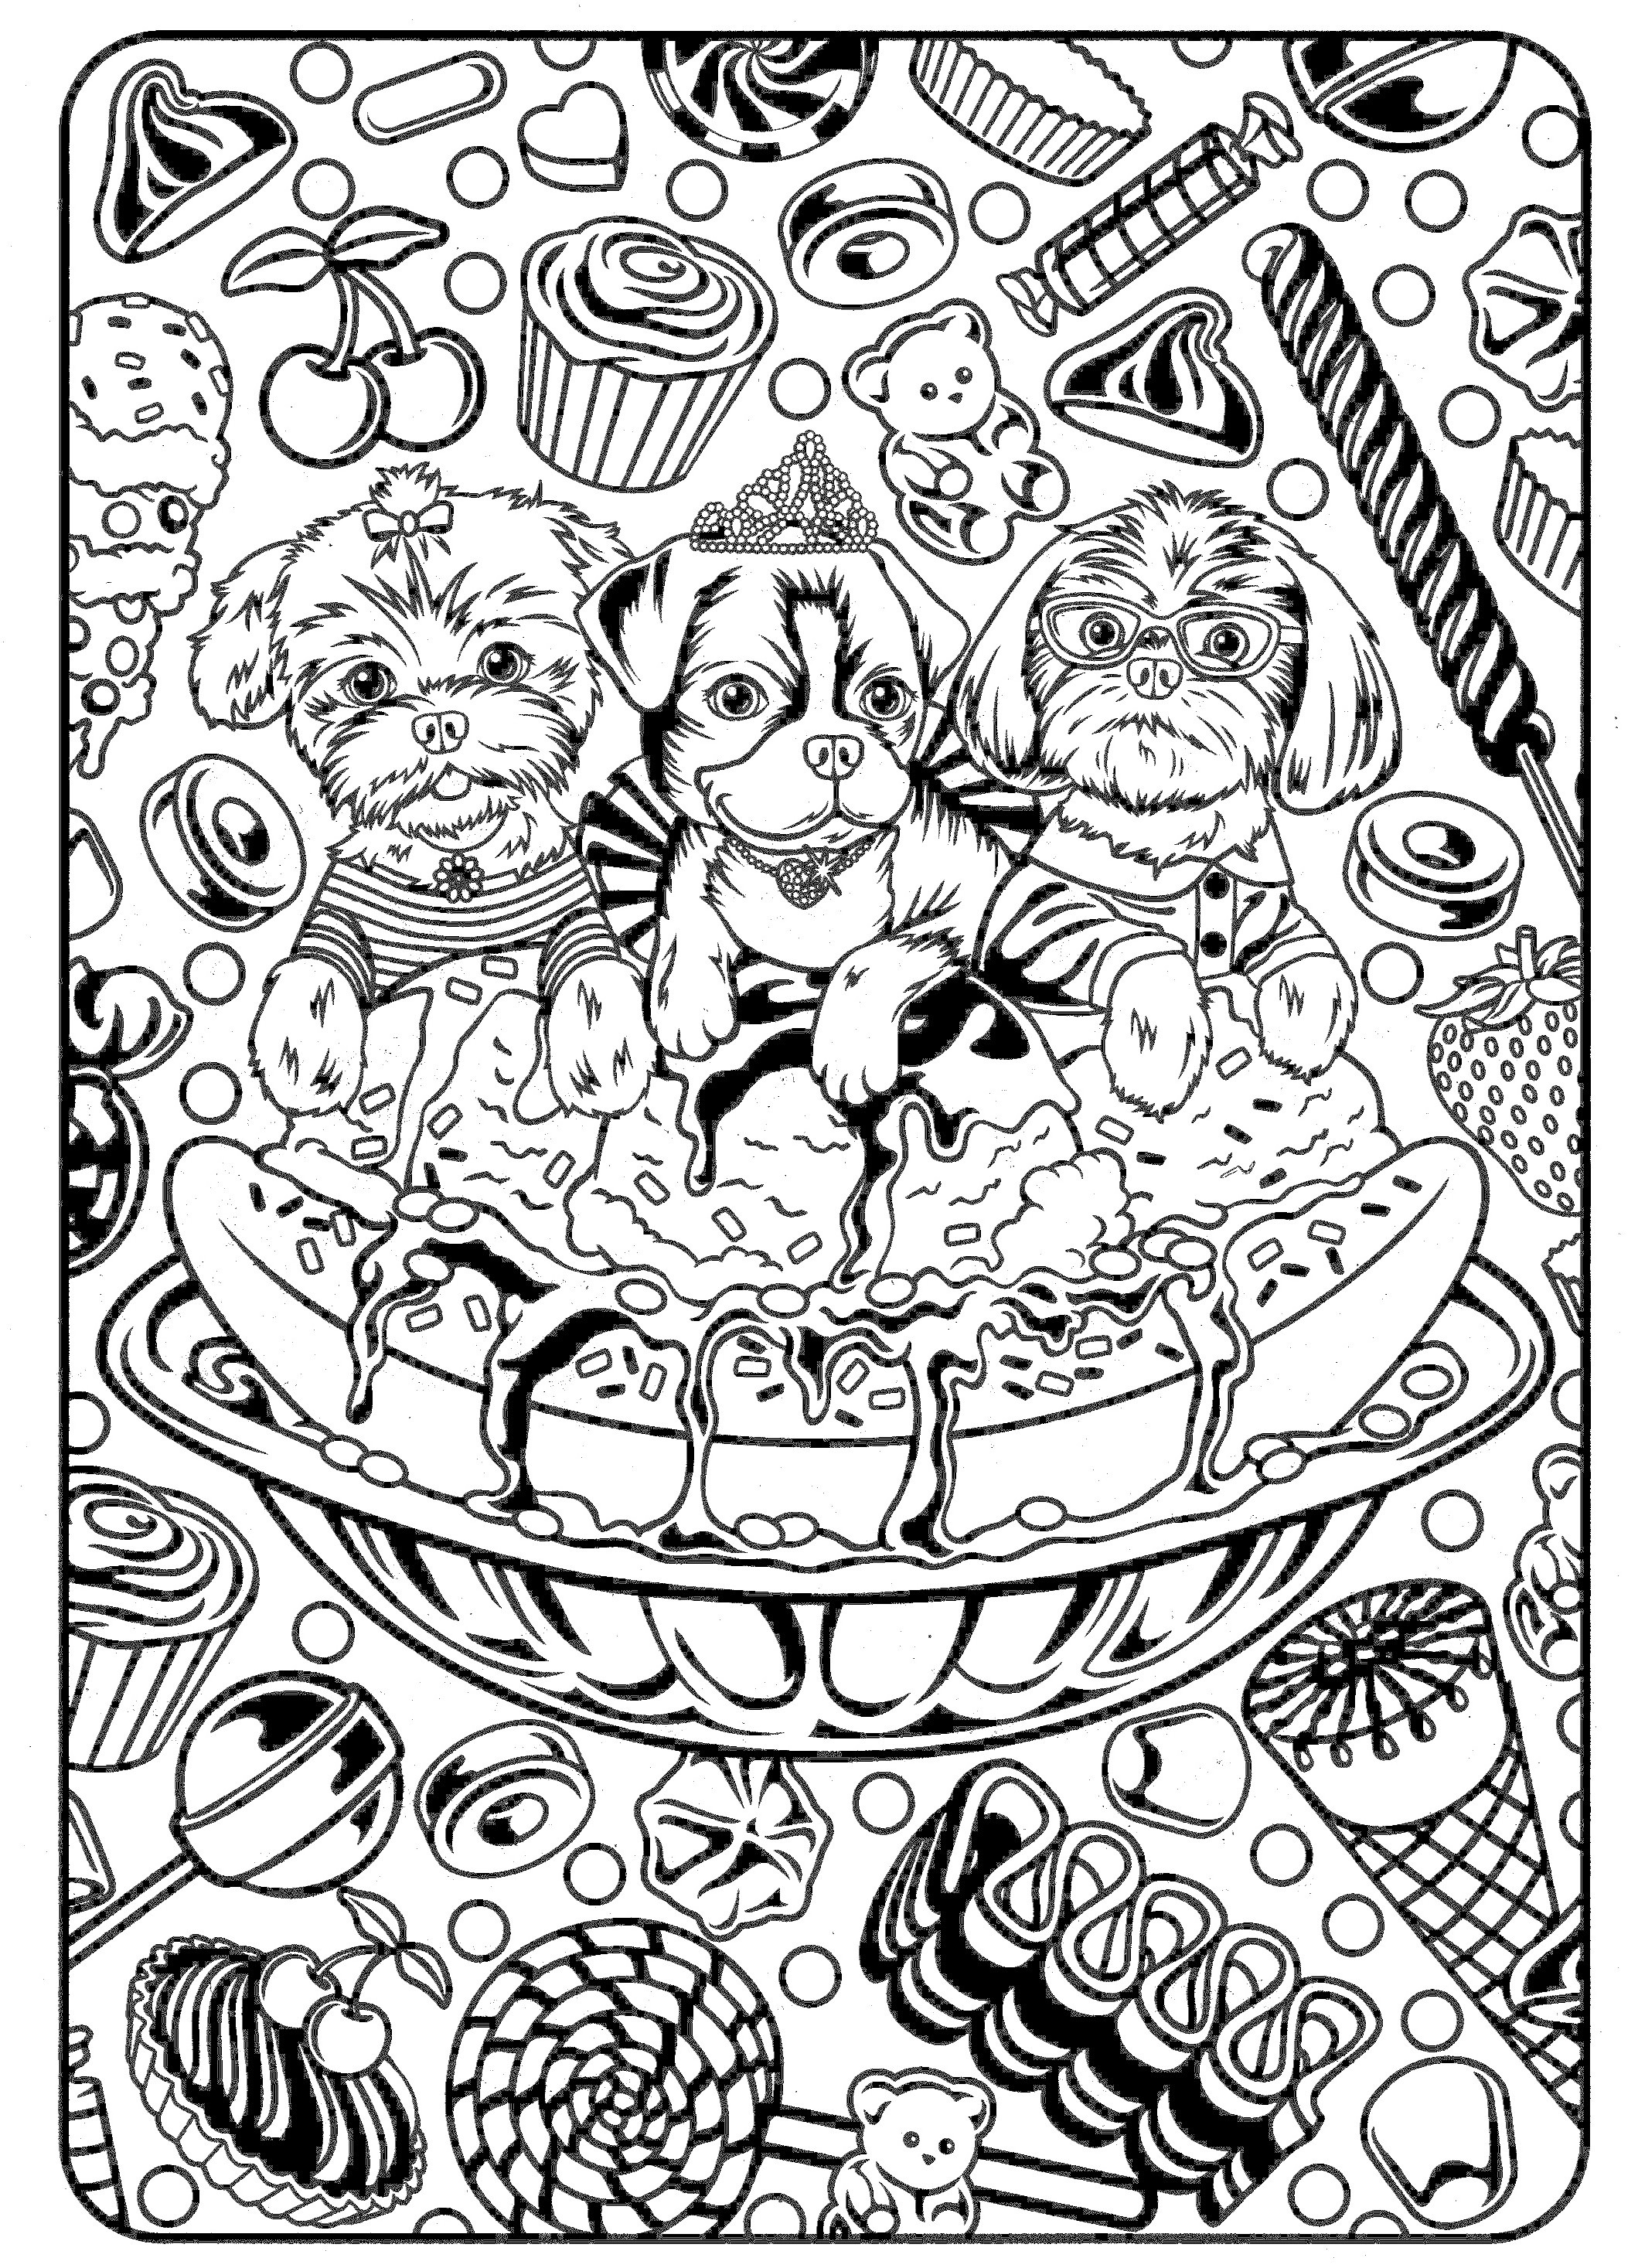 cute coloring sheets cute coloring pages best coloring pages for kids sheets cute coloring 1 1